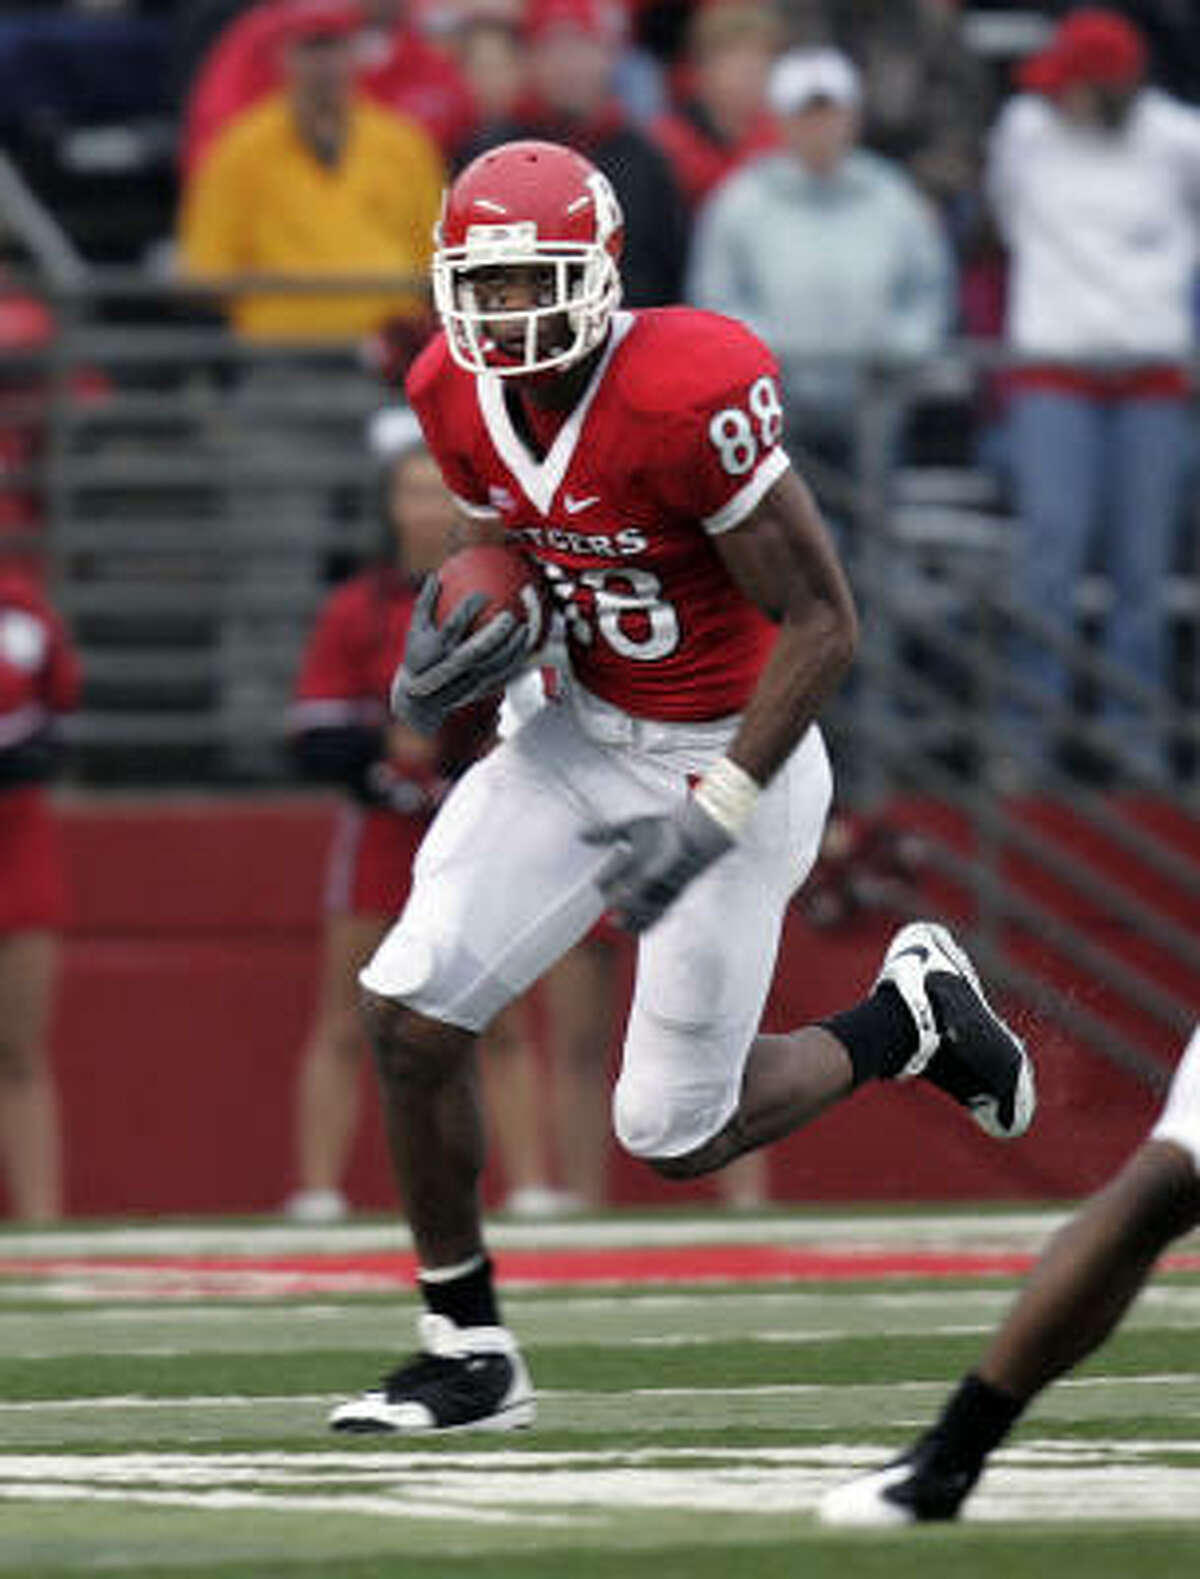 Round 1, 30th overall, Tennessee Titans Kenny Britt, WR, Rutgers